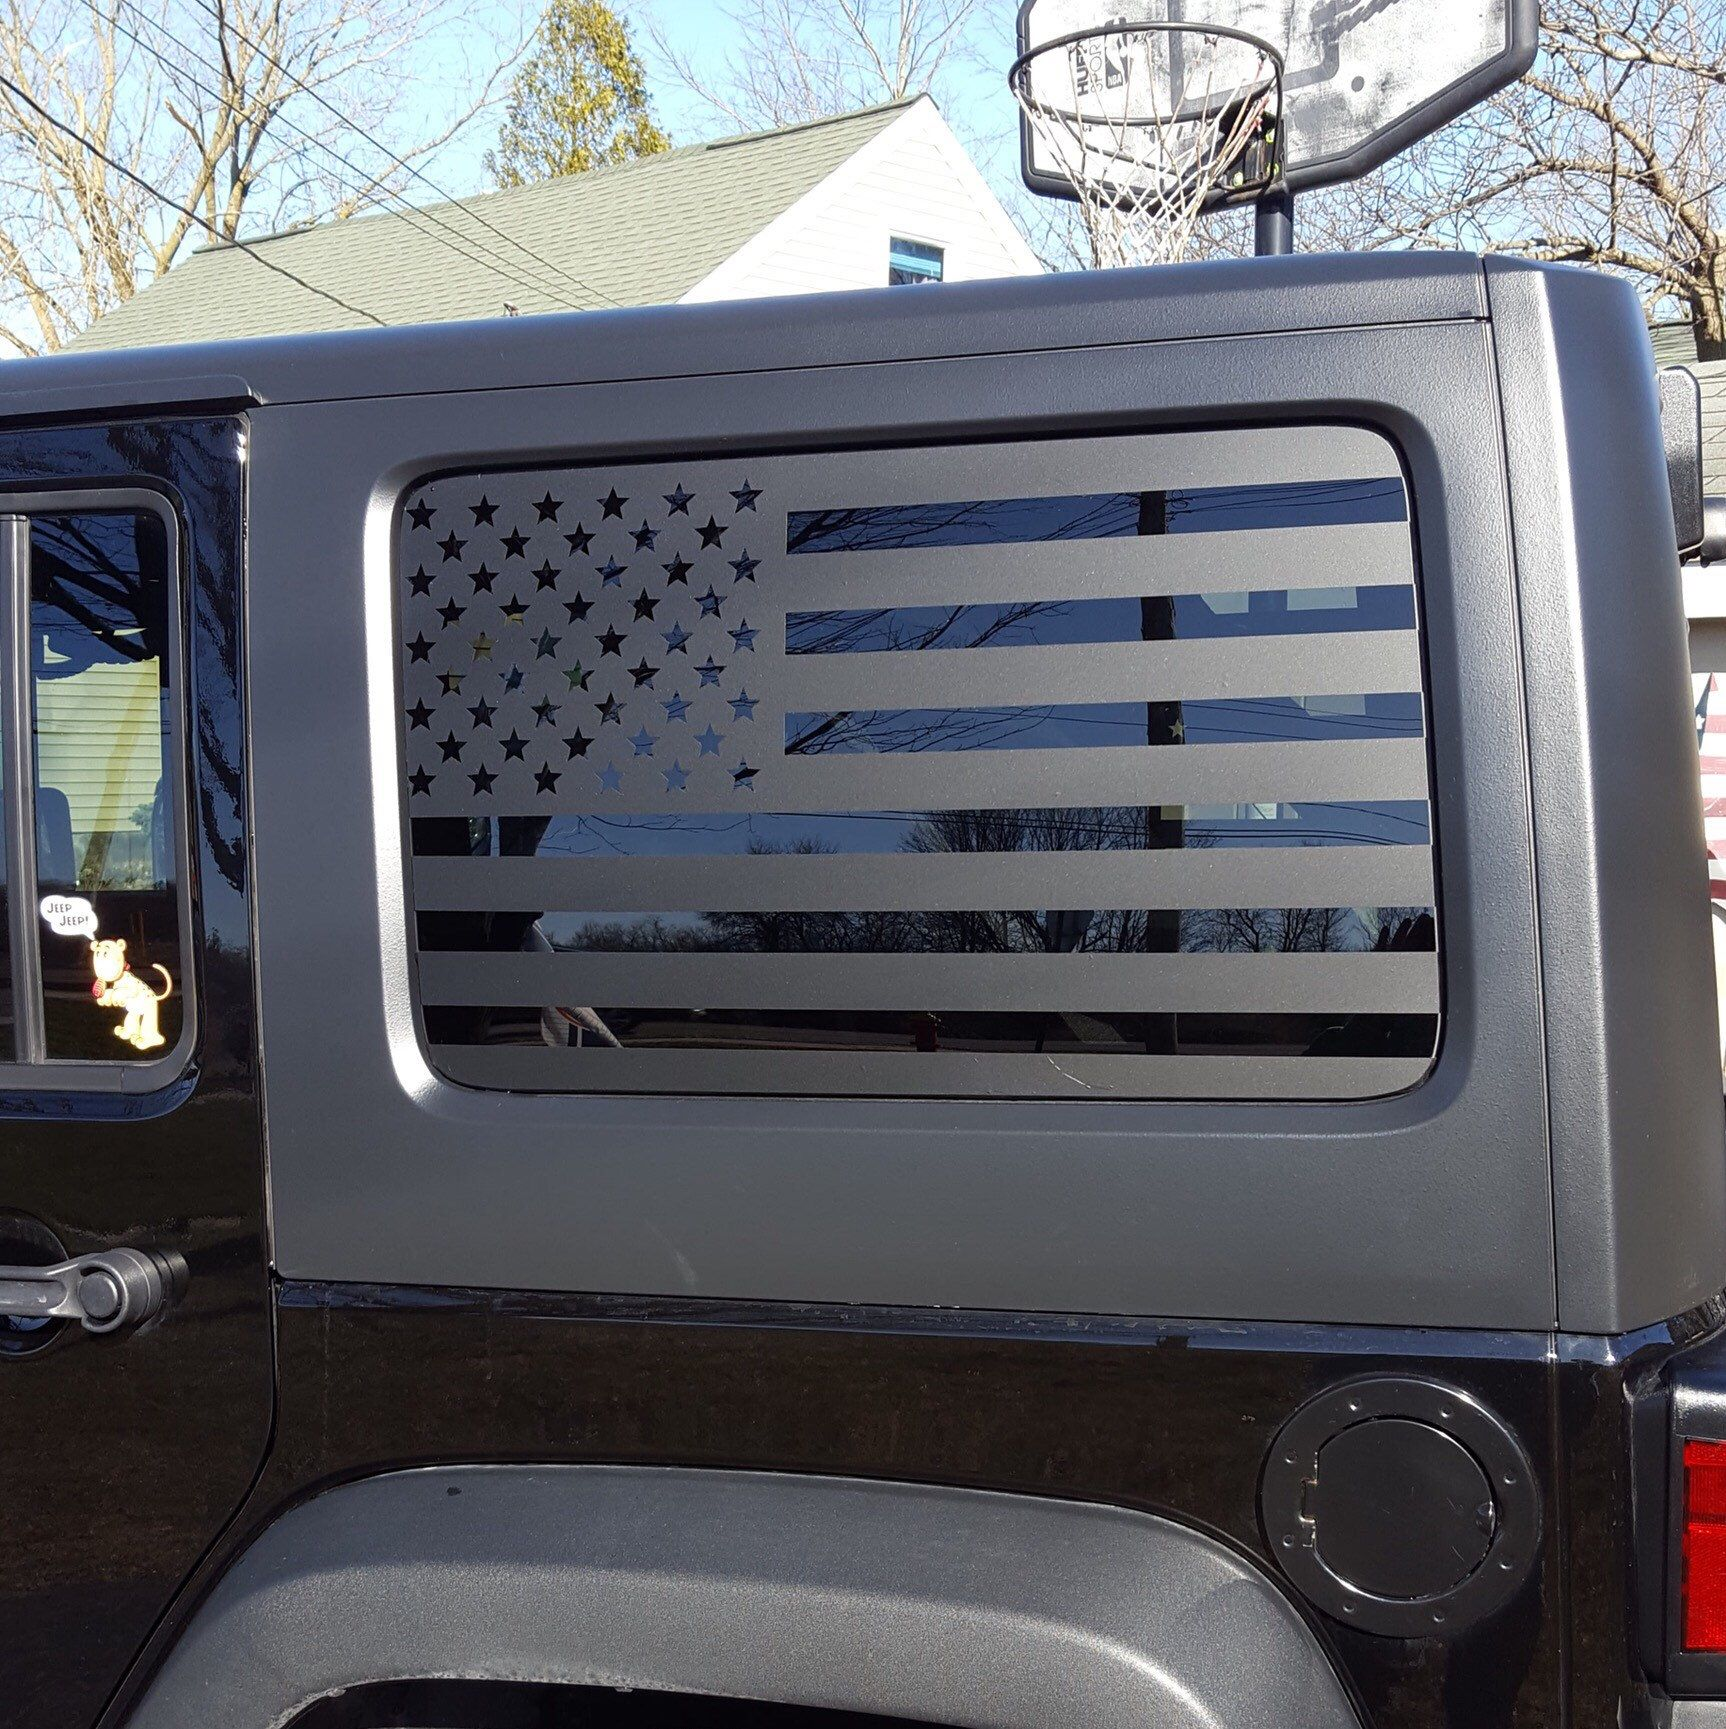 American Flag Decals For Jku Jeep Wrangler Hardtop Side Windows Matte Black Patriotic Flags 4 Door Hs8 By The With Images American Flag Decal Flag Decal Jeep Stickers